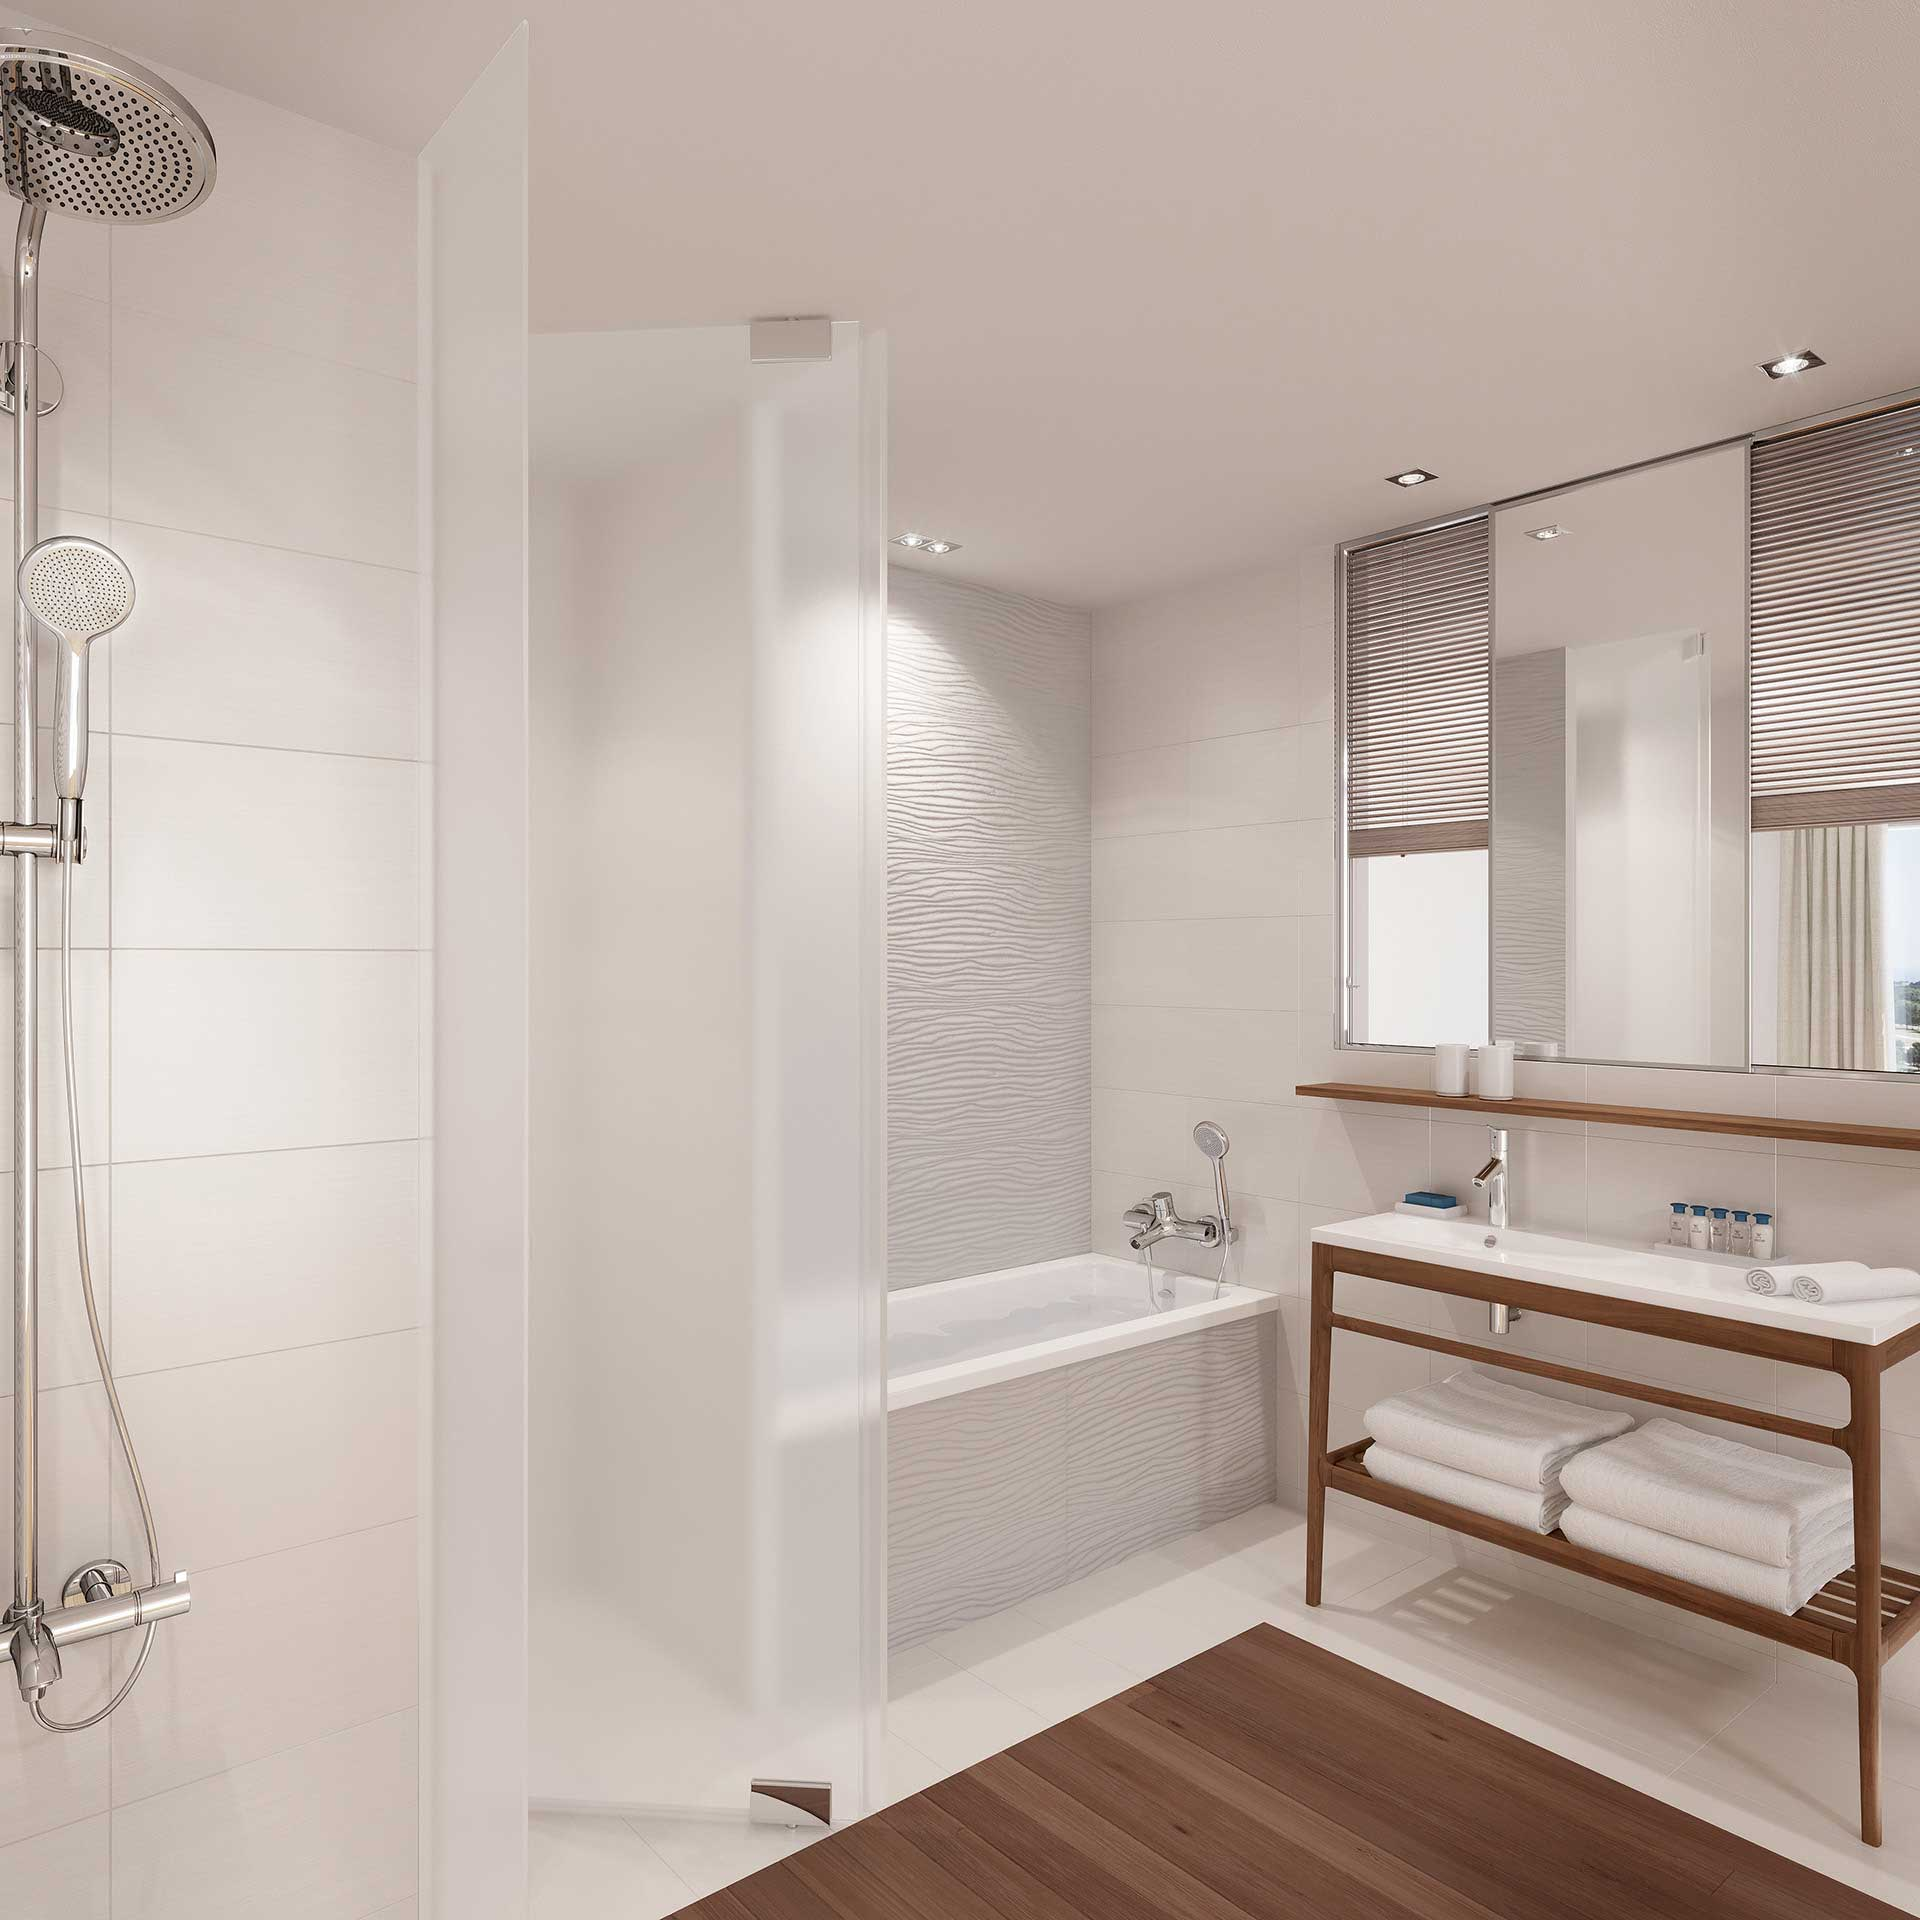 3D Perspective of a bathroom made from computer generated images